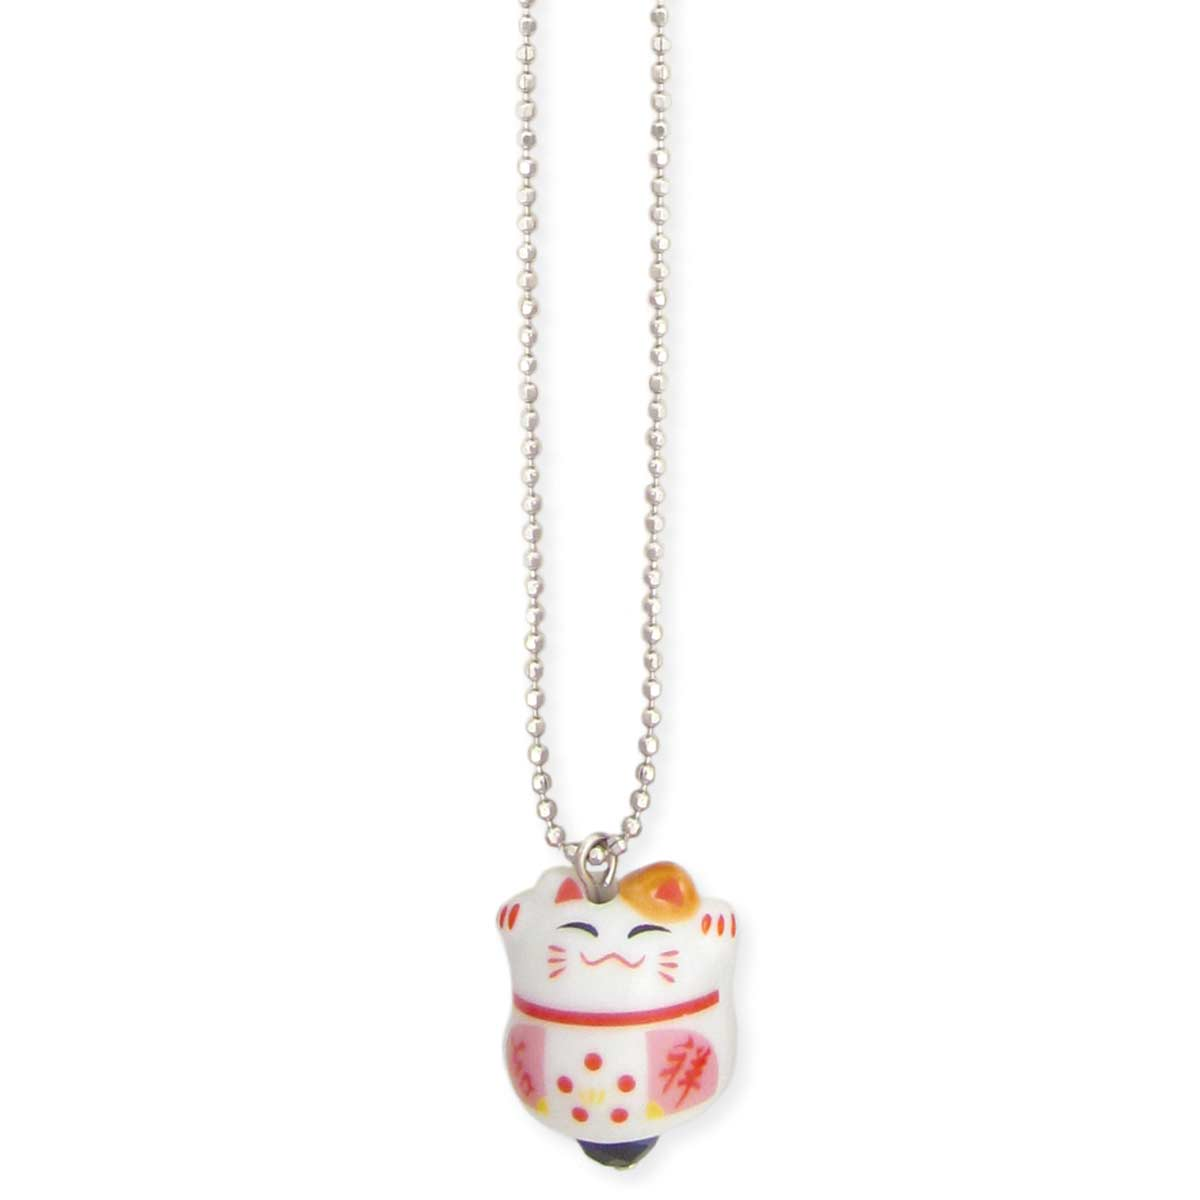 necklace simply cat avenue purrfection products